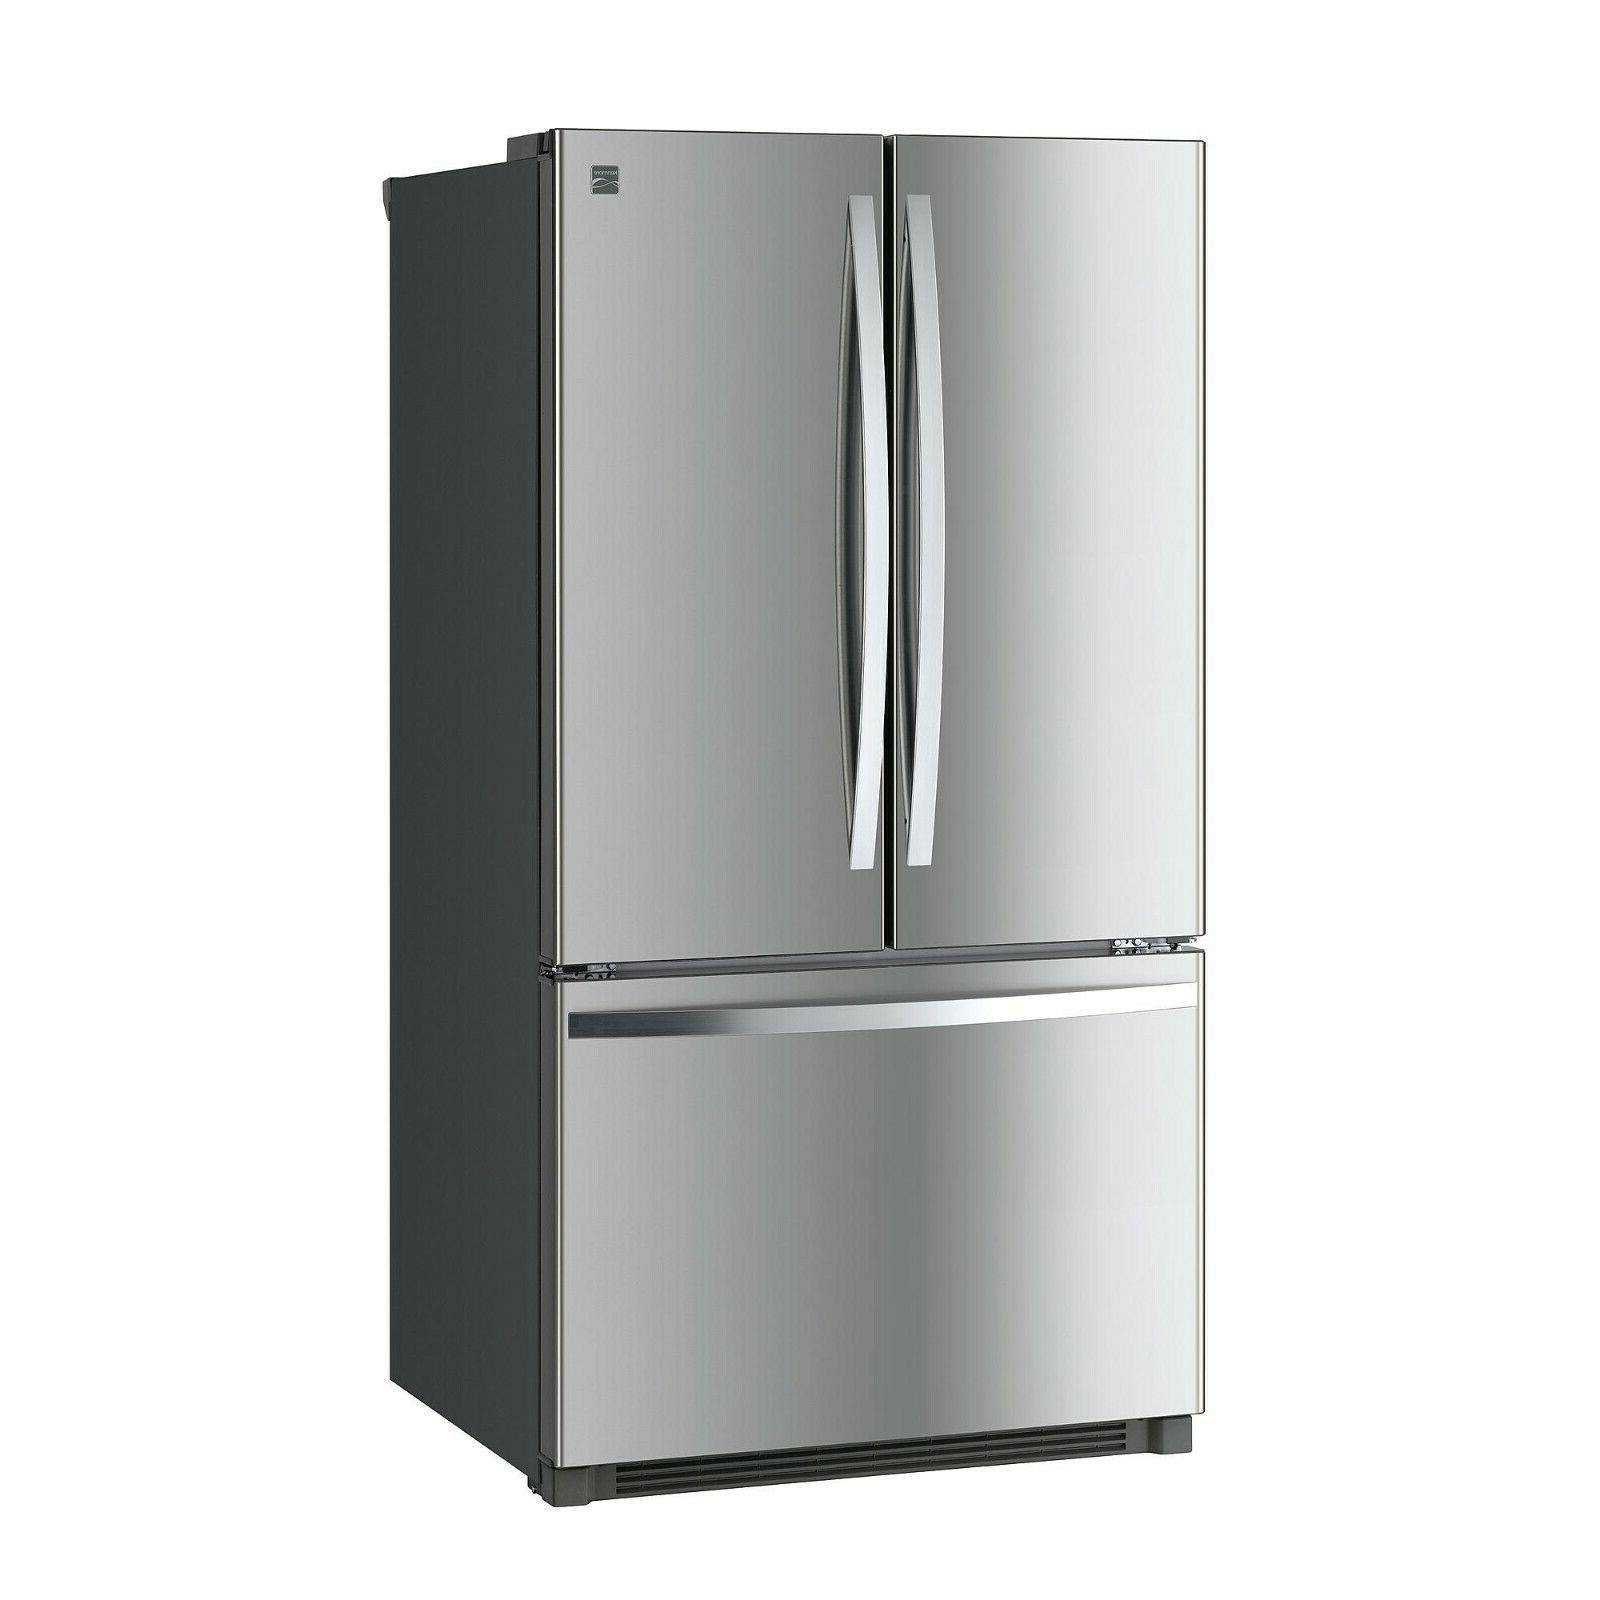 kenmore 73025 26 1 cu ft french